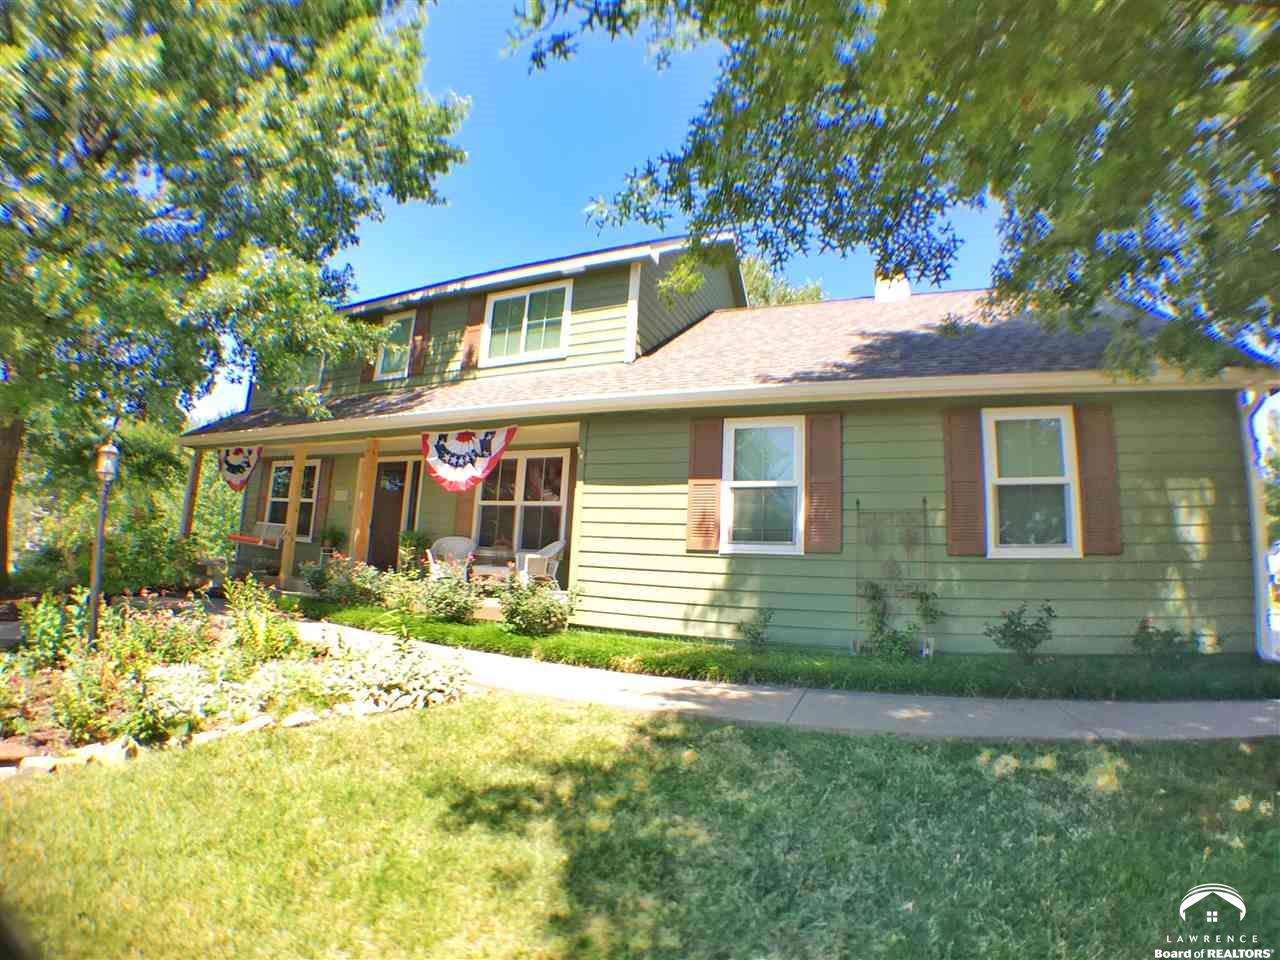 1900 Golden Rain Dr., Lawrence, KS 66044